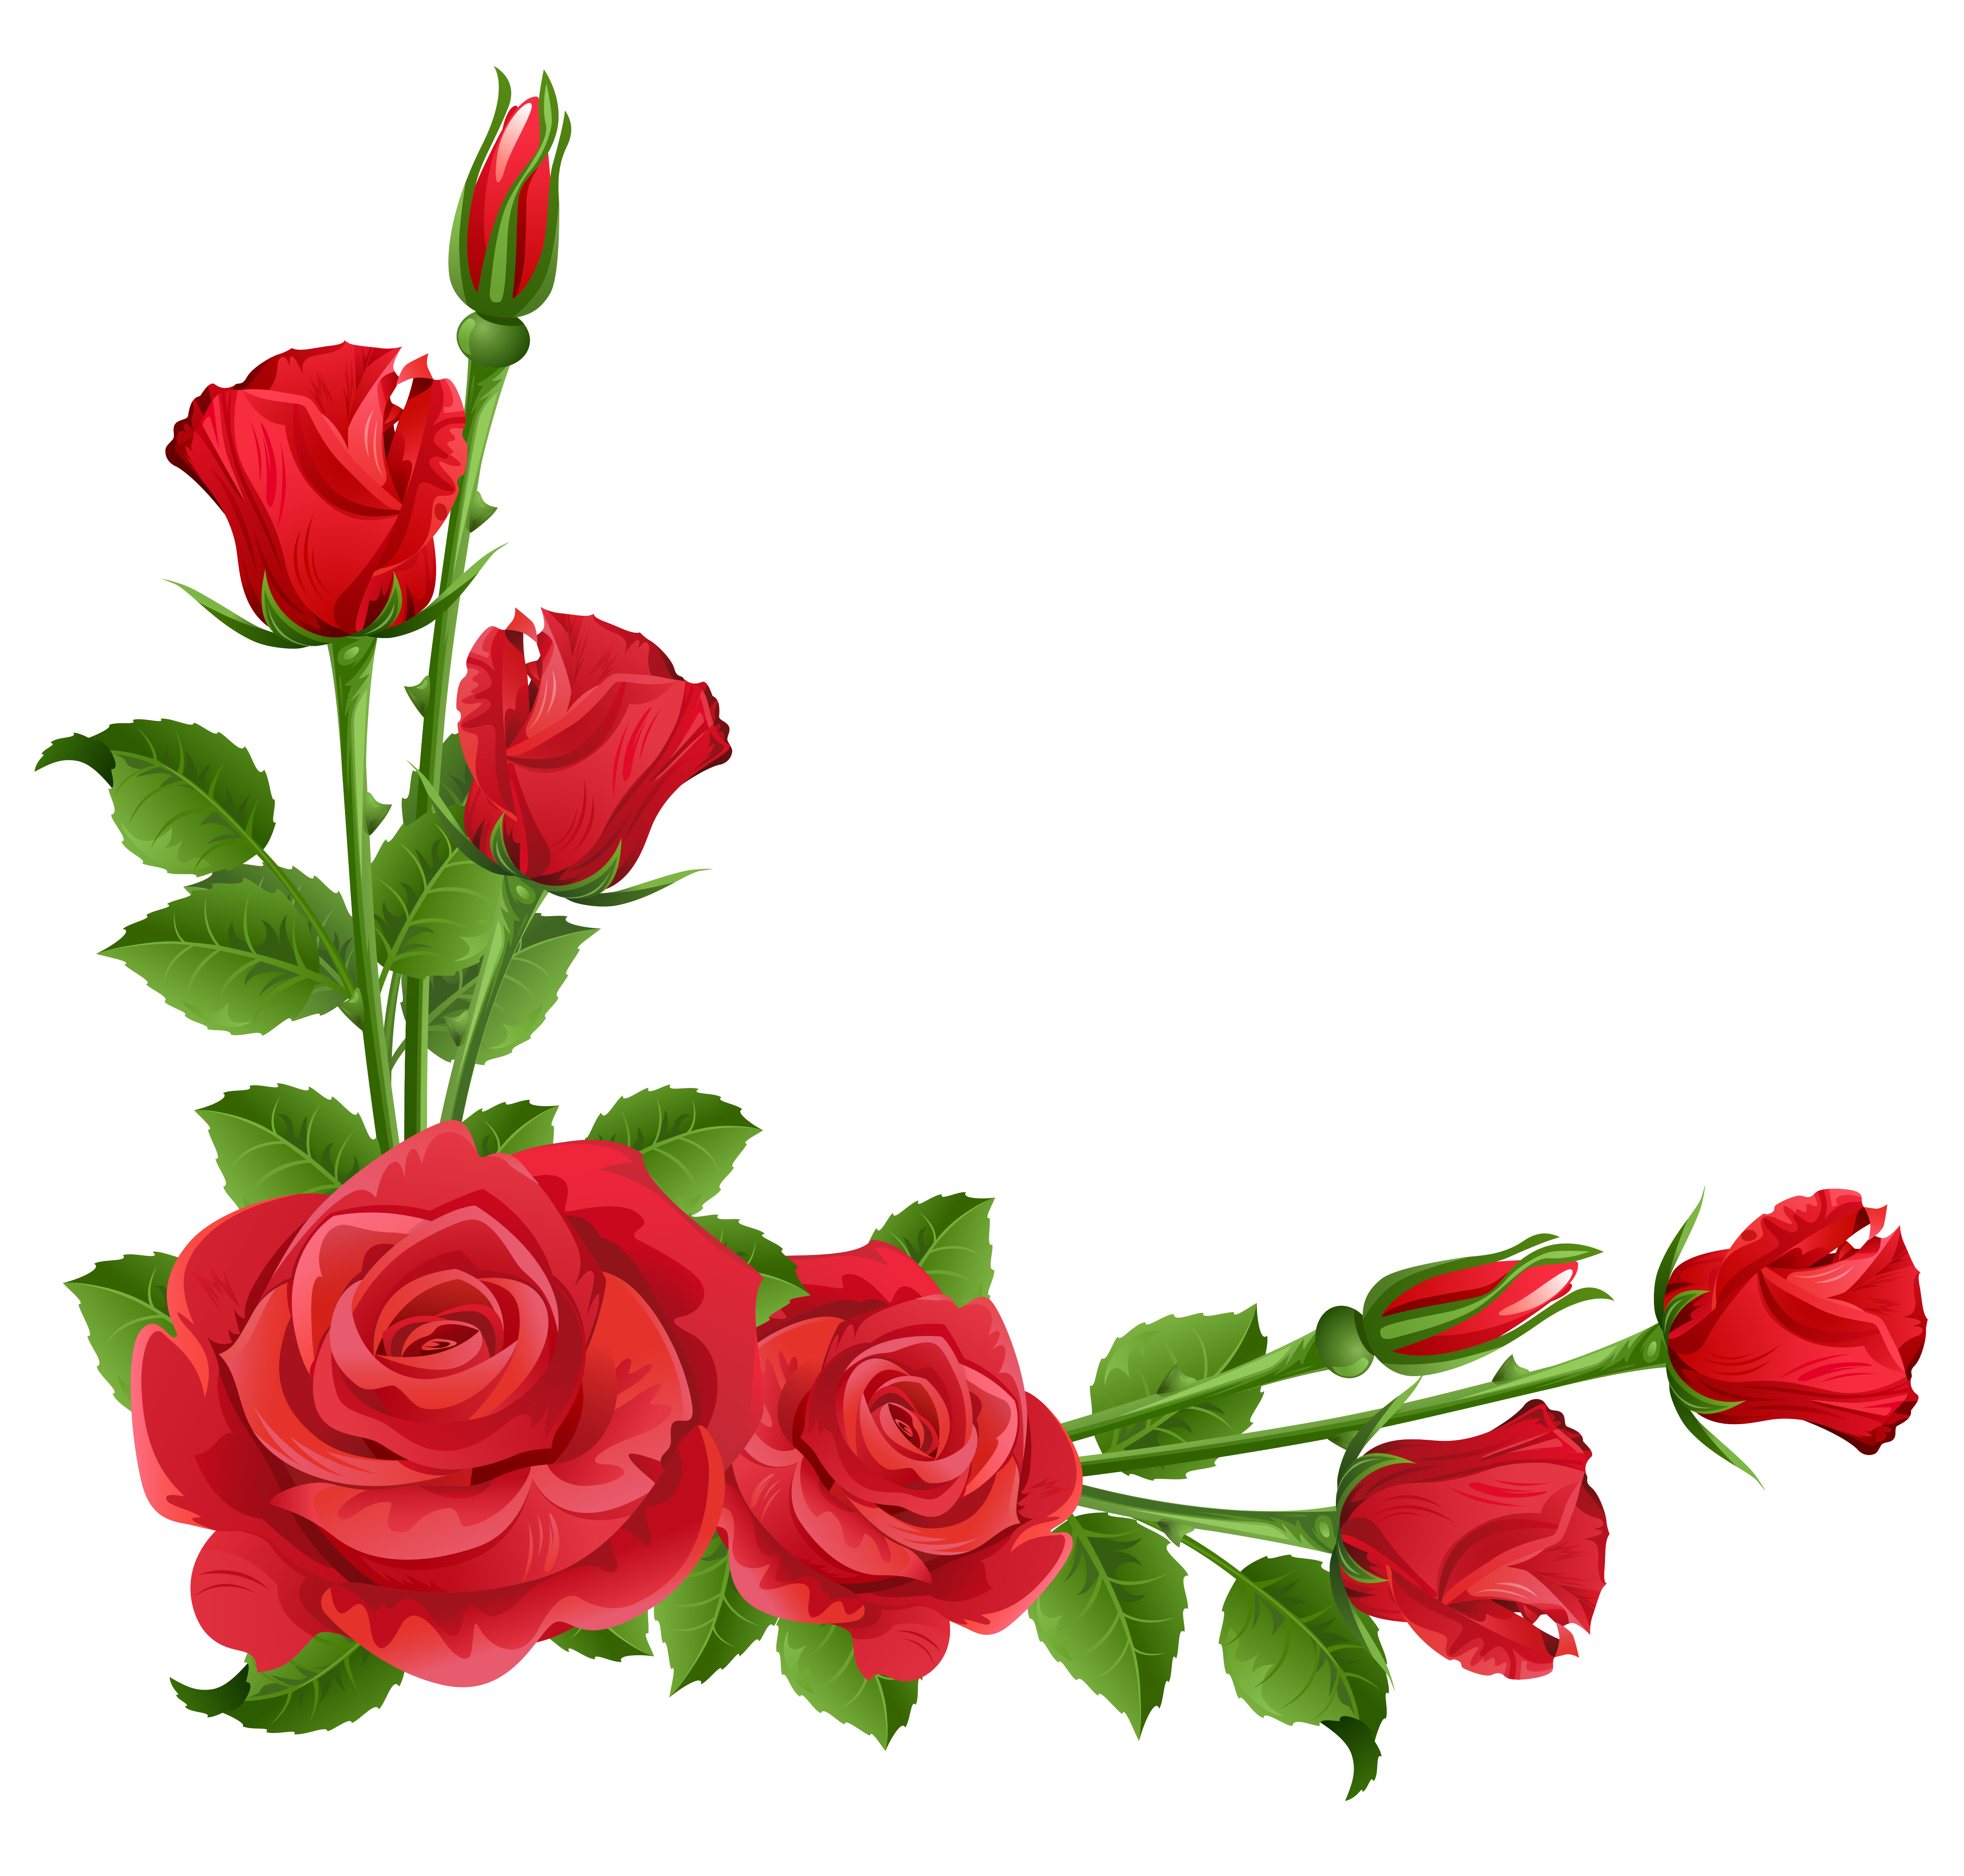 royalty free download Red roses transparent png. Flowers clipart name